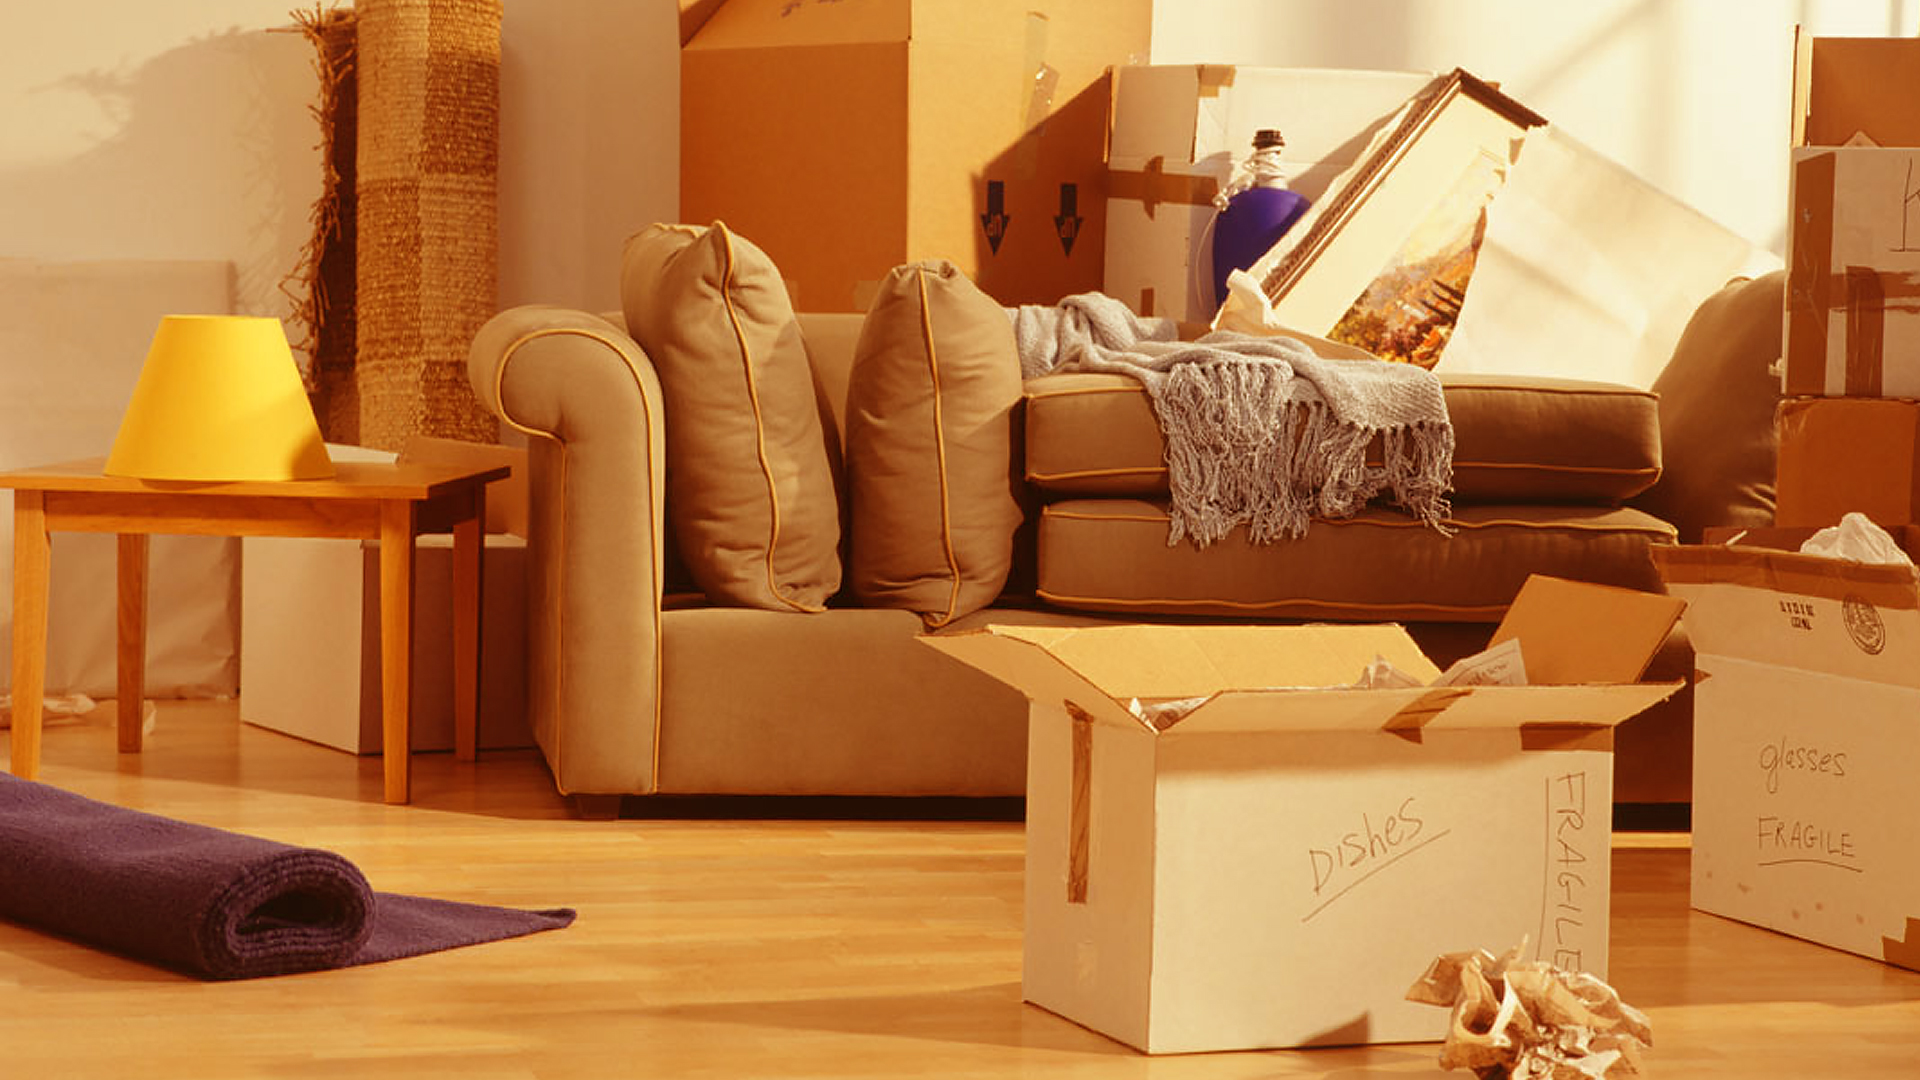 Why Packing Is So Important For Relocation? 1